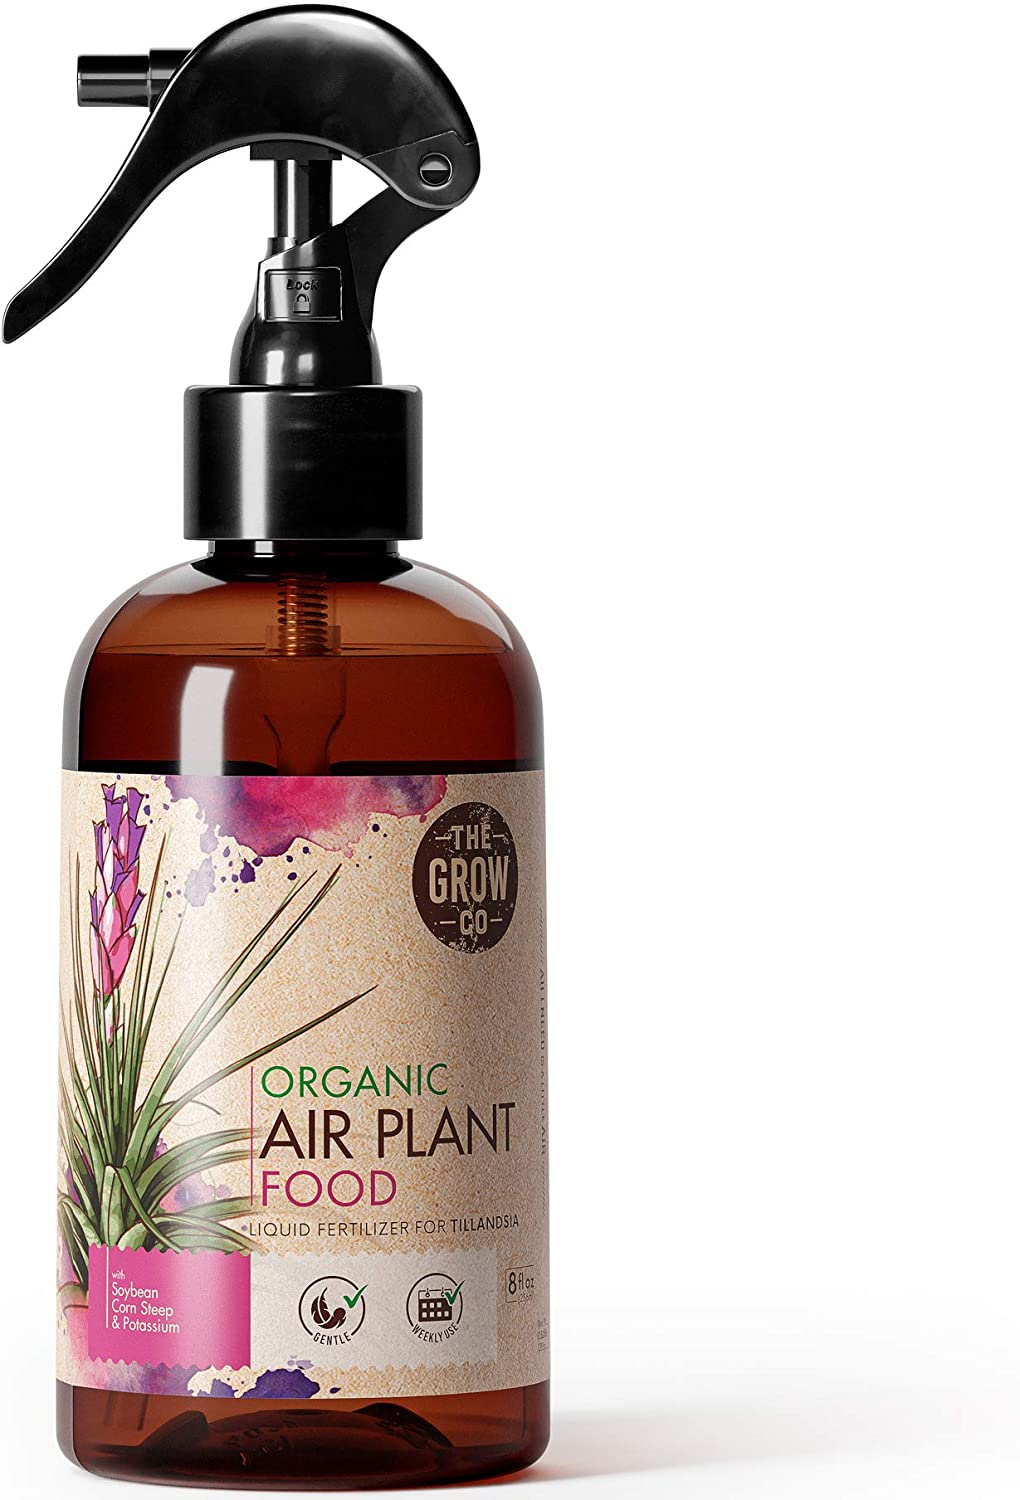 Organic Ready to Spray Air Plant Food - Fertilizer Mist for Weekly Use - Best for Live Tillandisa, Bromeliads, and Other Common Air Plants (8 oz)